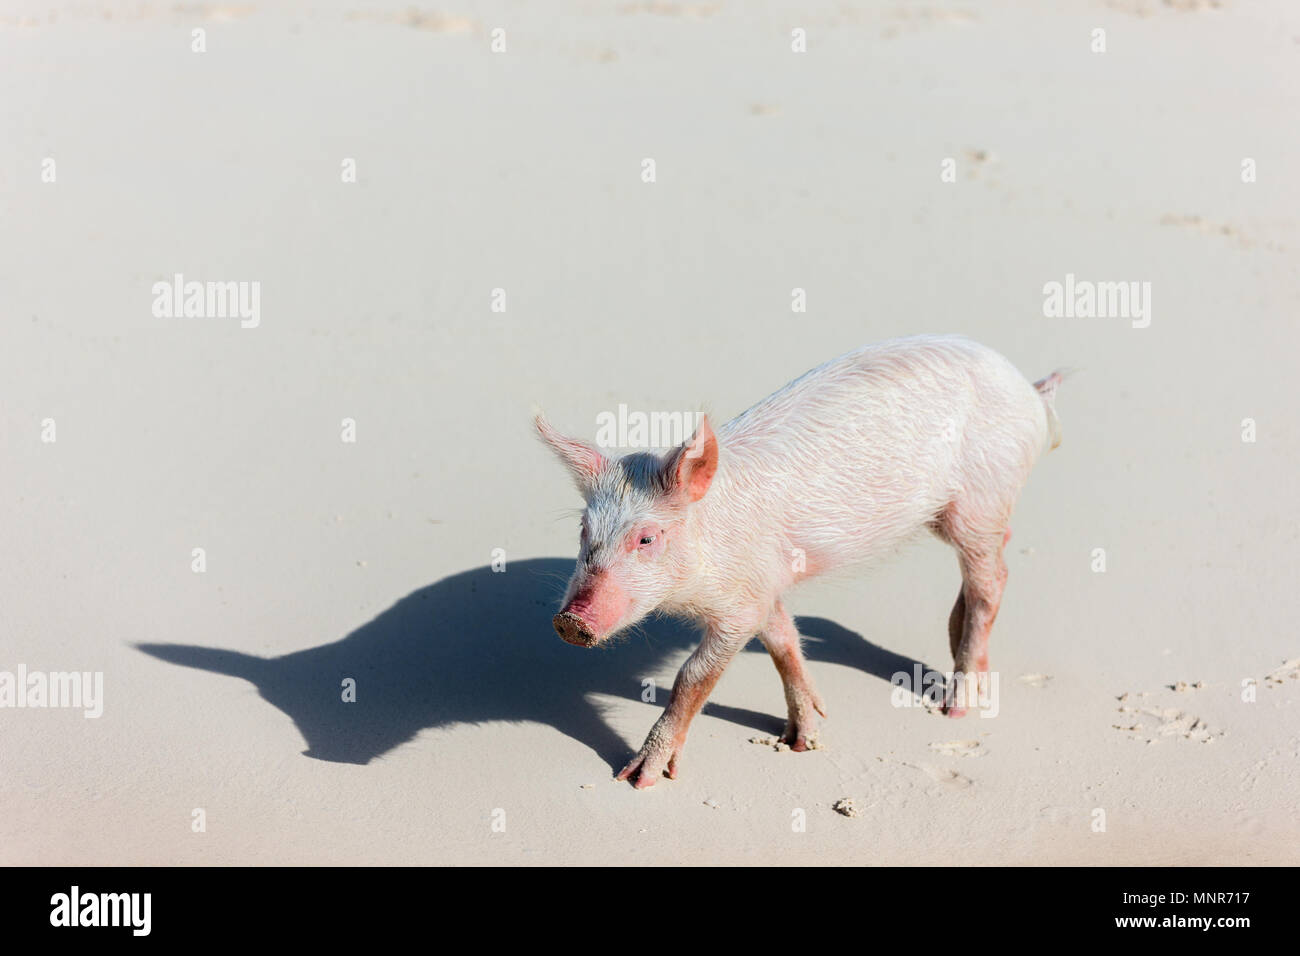 Little piglet at Exuma beach Bahamas - Stock Image